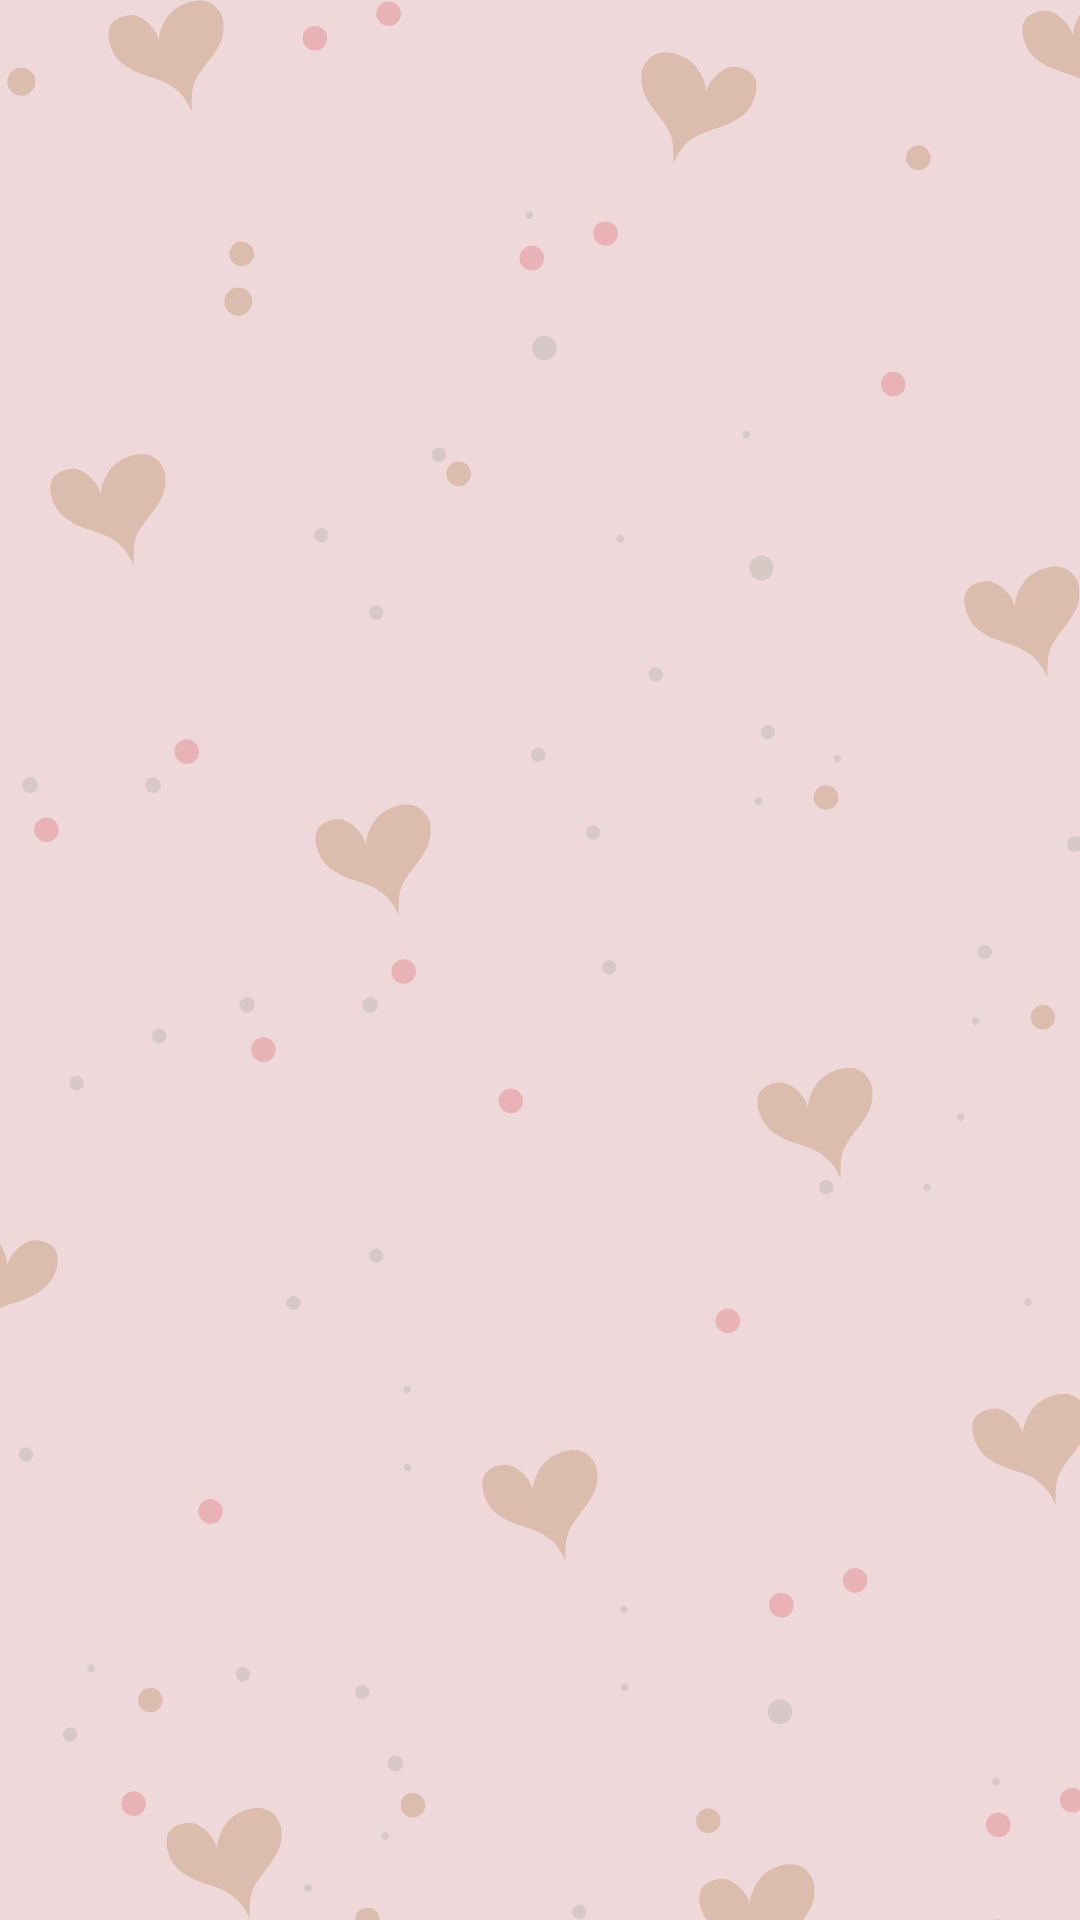 Pink Aesthetic Hearts Wallpaper And Instagram Story Heart Wallpaper Wallpaper Iphone Neon Instagram Wallpaper